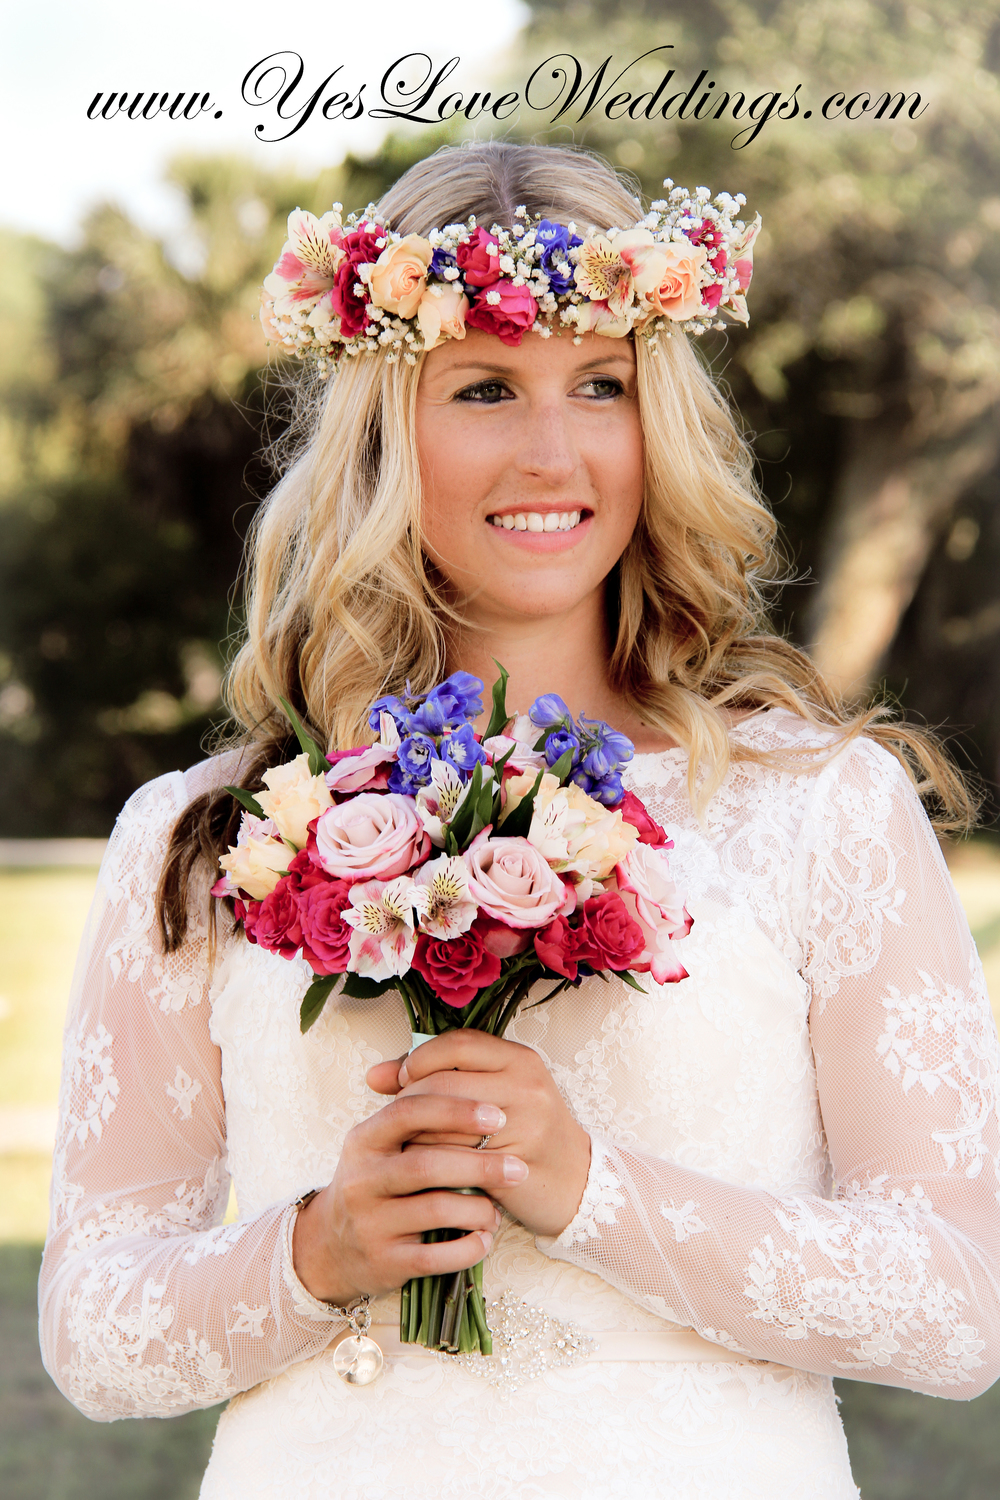 Tybee Island Georgia Beach Wedding Bride with floral crown wedding flowers